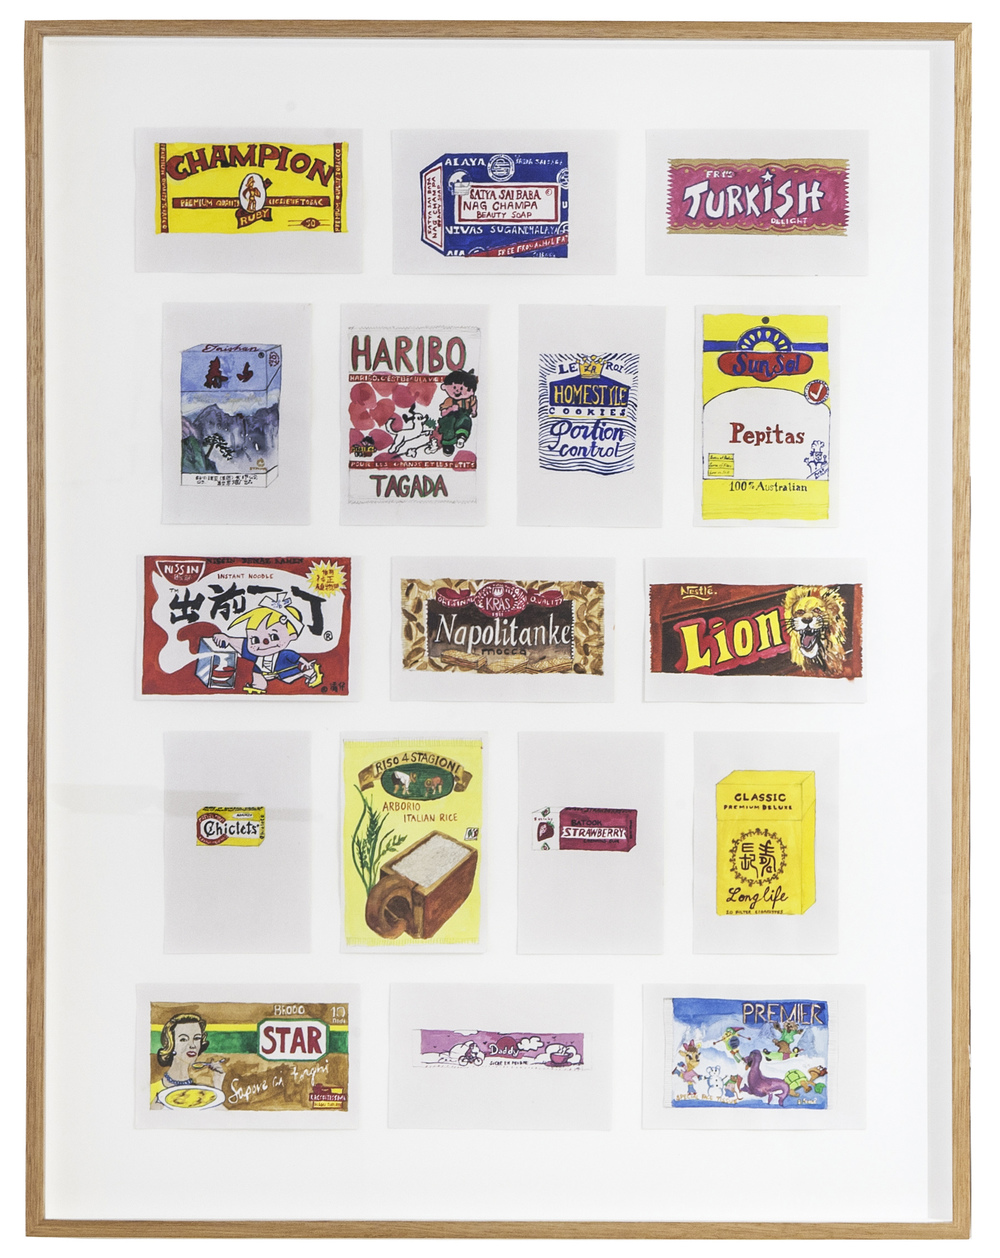 Sarah Goffman, Packaging Copies, 2006 in JANIS II, 2013, Mclemoi Gallery, Sydney (photo: Jessica Maurer)